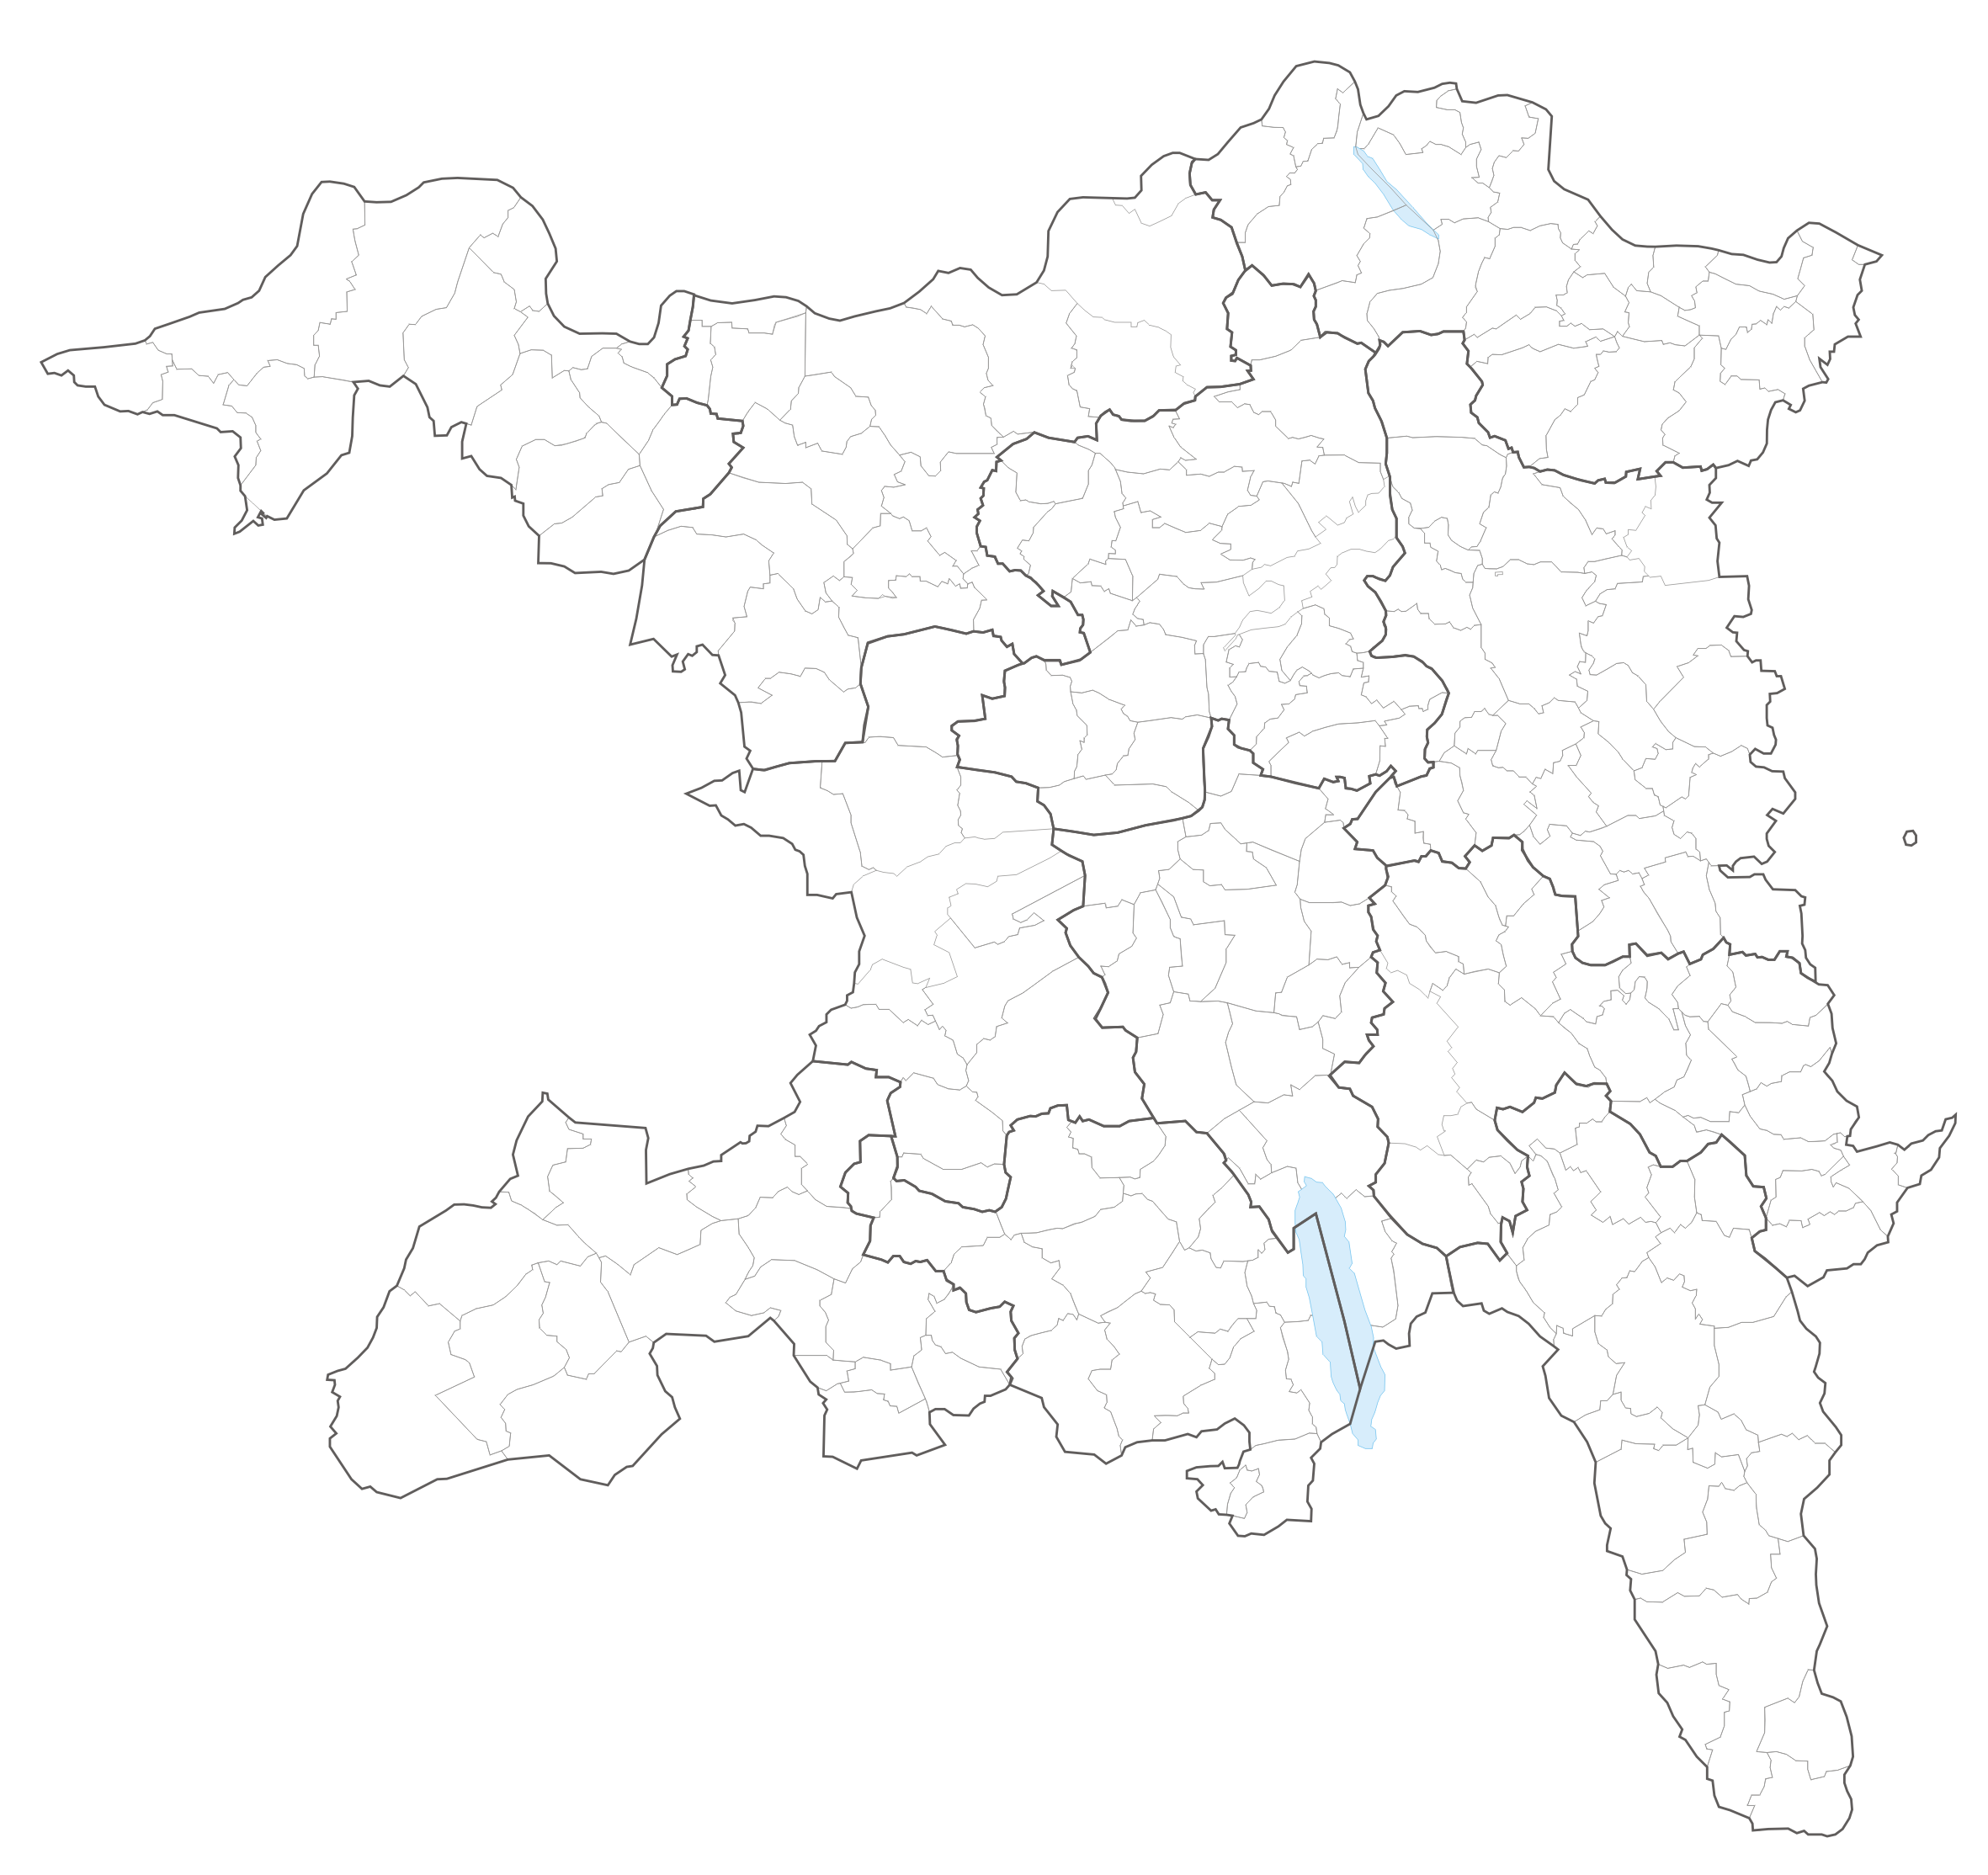 Municipalities of the canton of Aargau